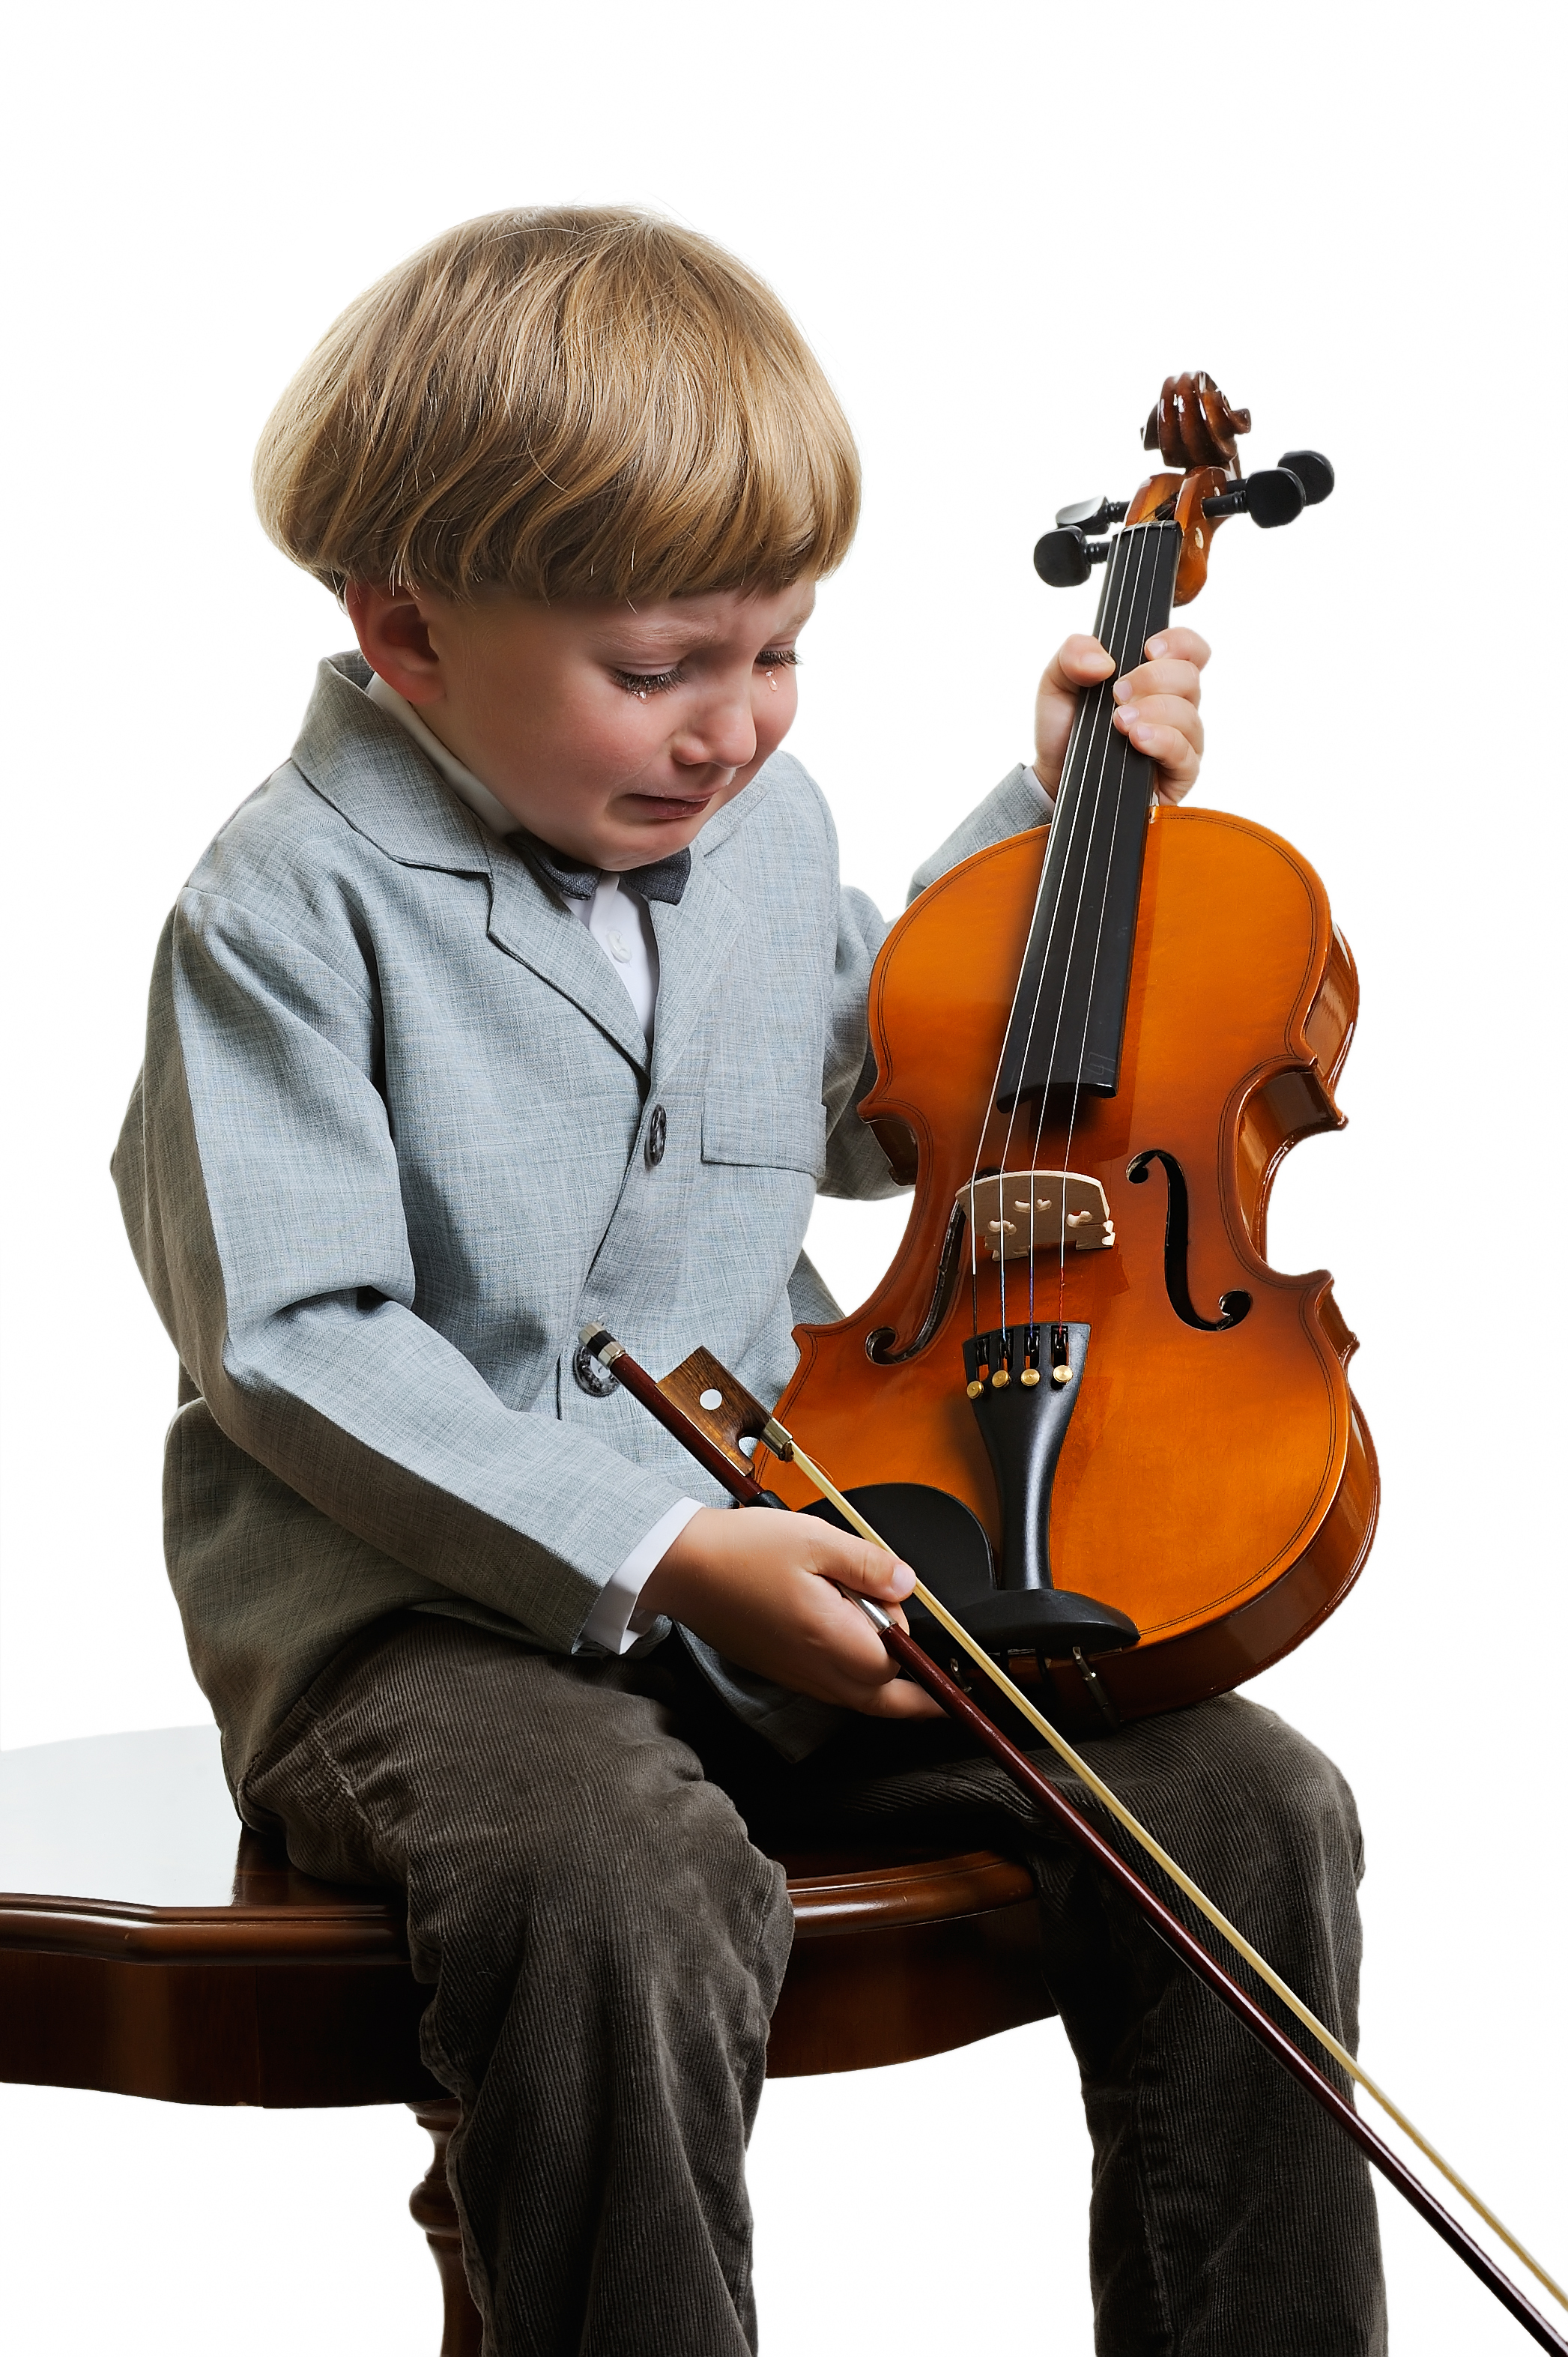 Boy with Violin crying